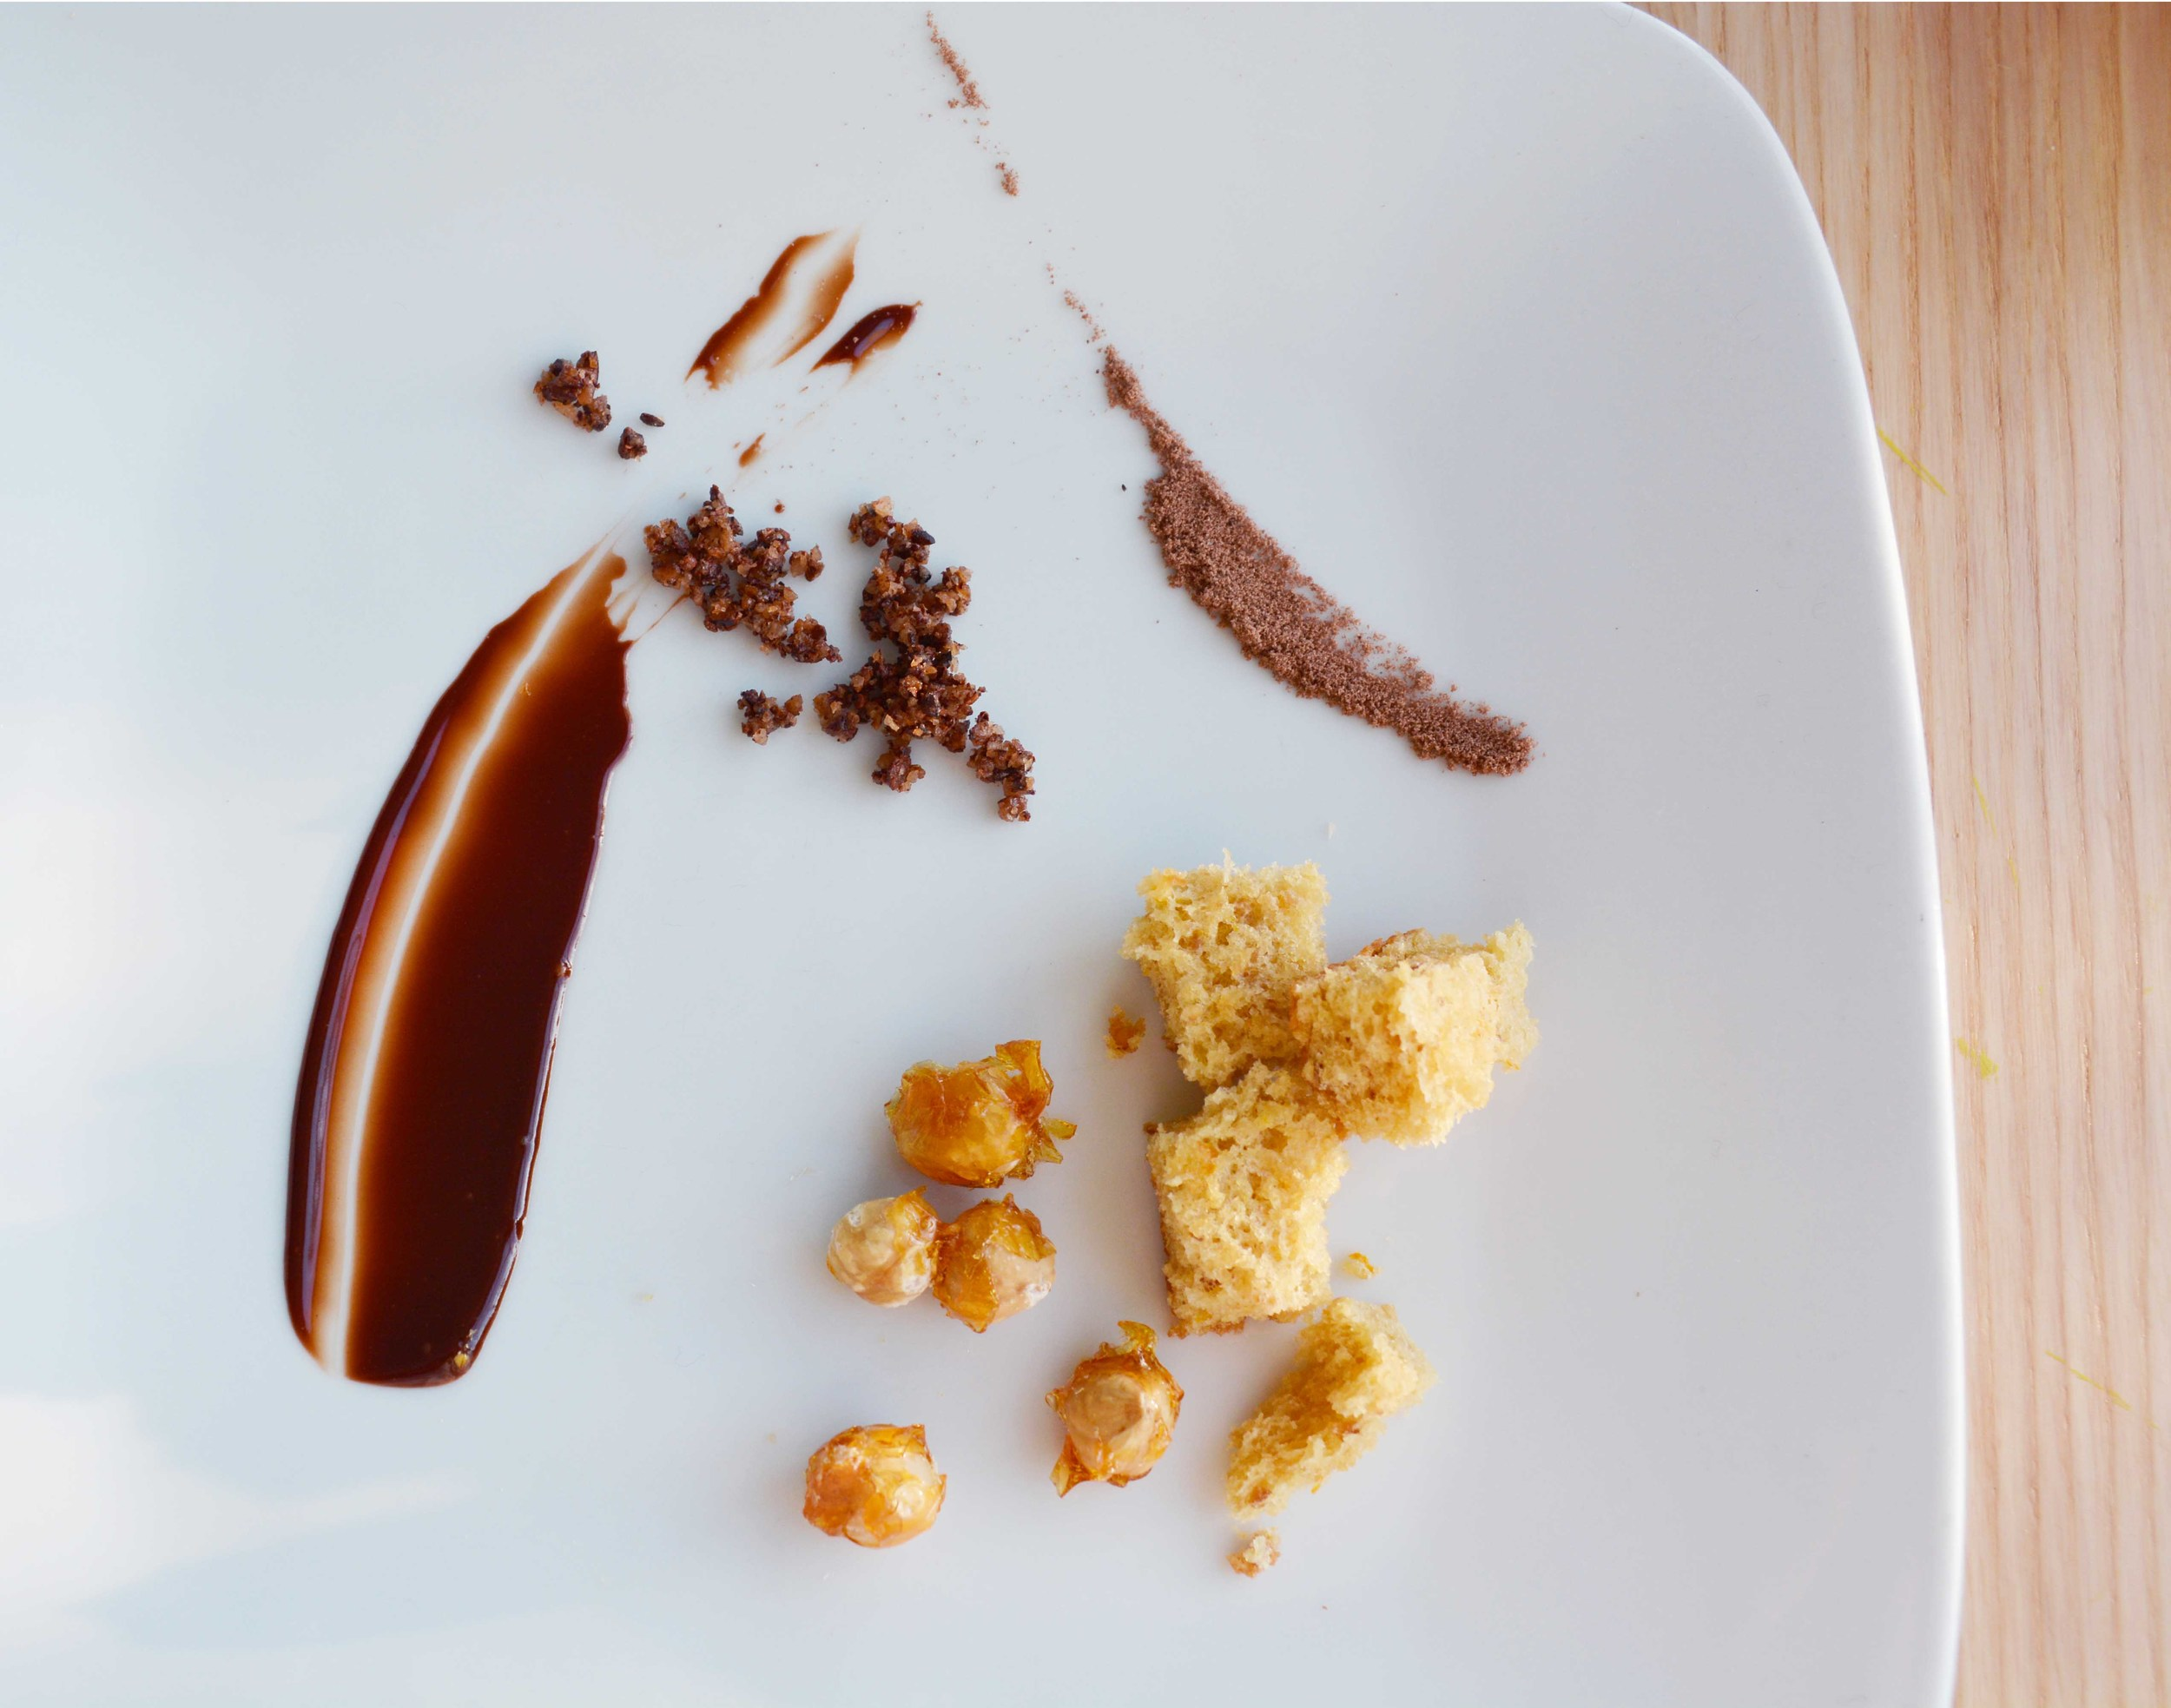 Some mise en place. Chocolate sauce, cocoa nib crumble, chocolate crumbs, hazelnut cake, and caramelized hazelnuts.